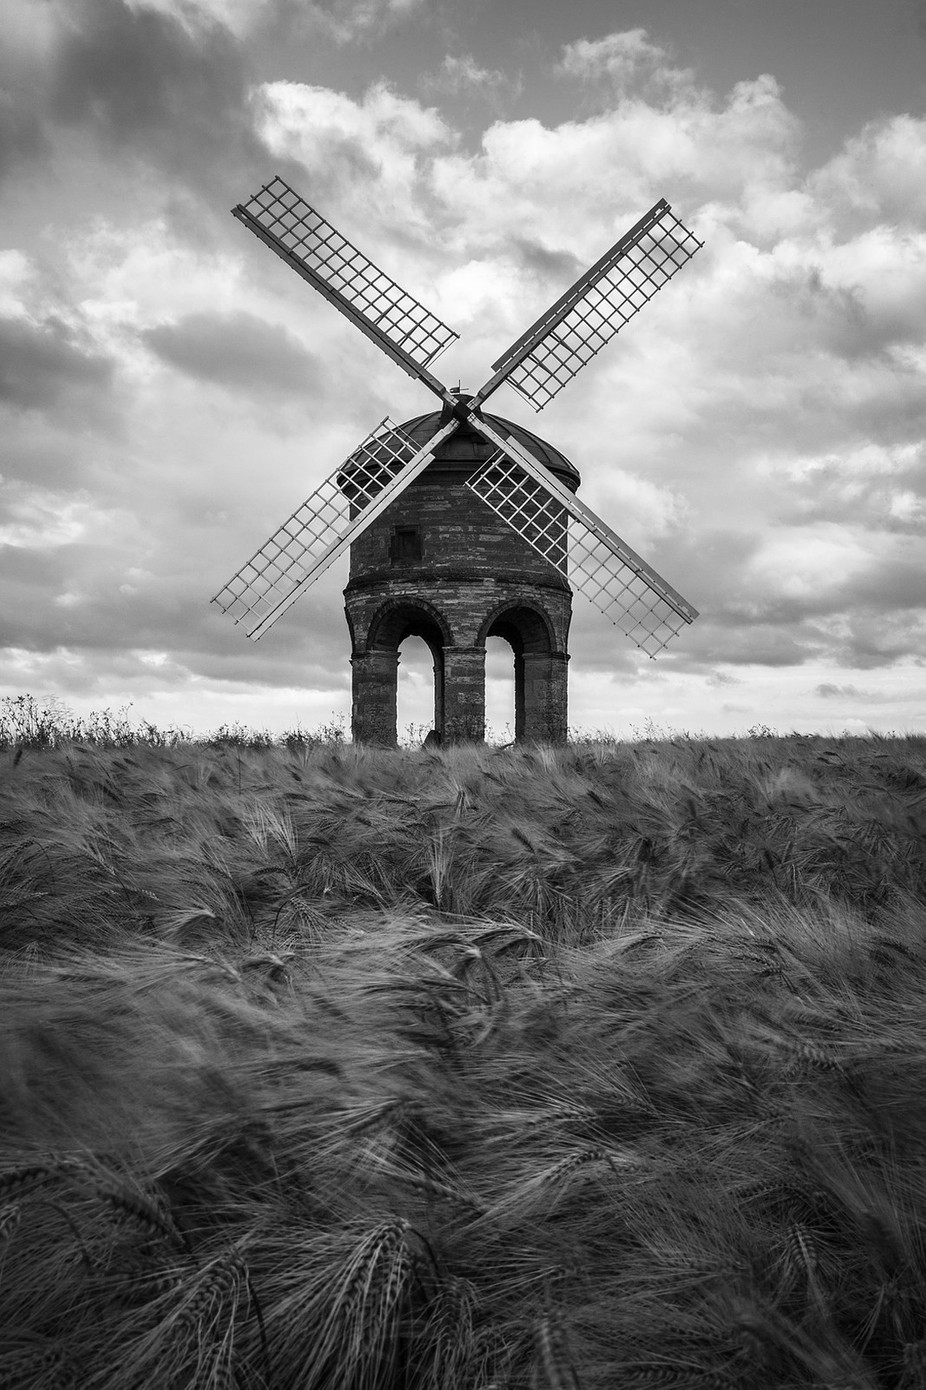 Chesterton Windmill by johnchapman - Windmills Photo Contest